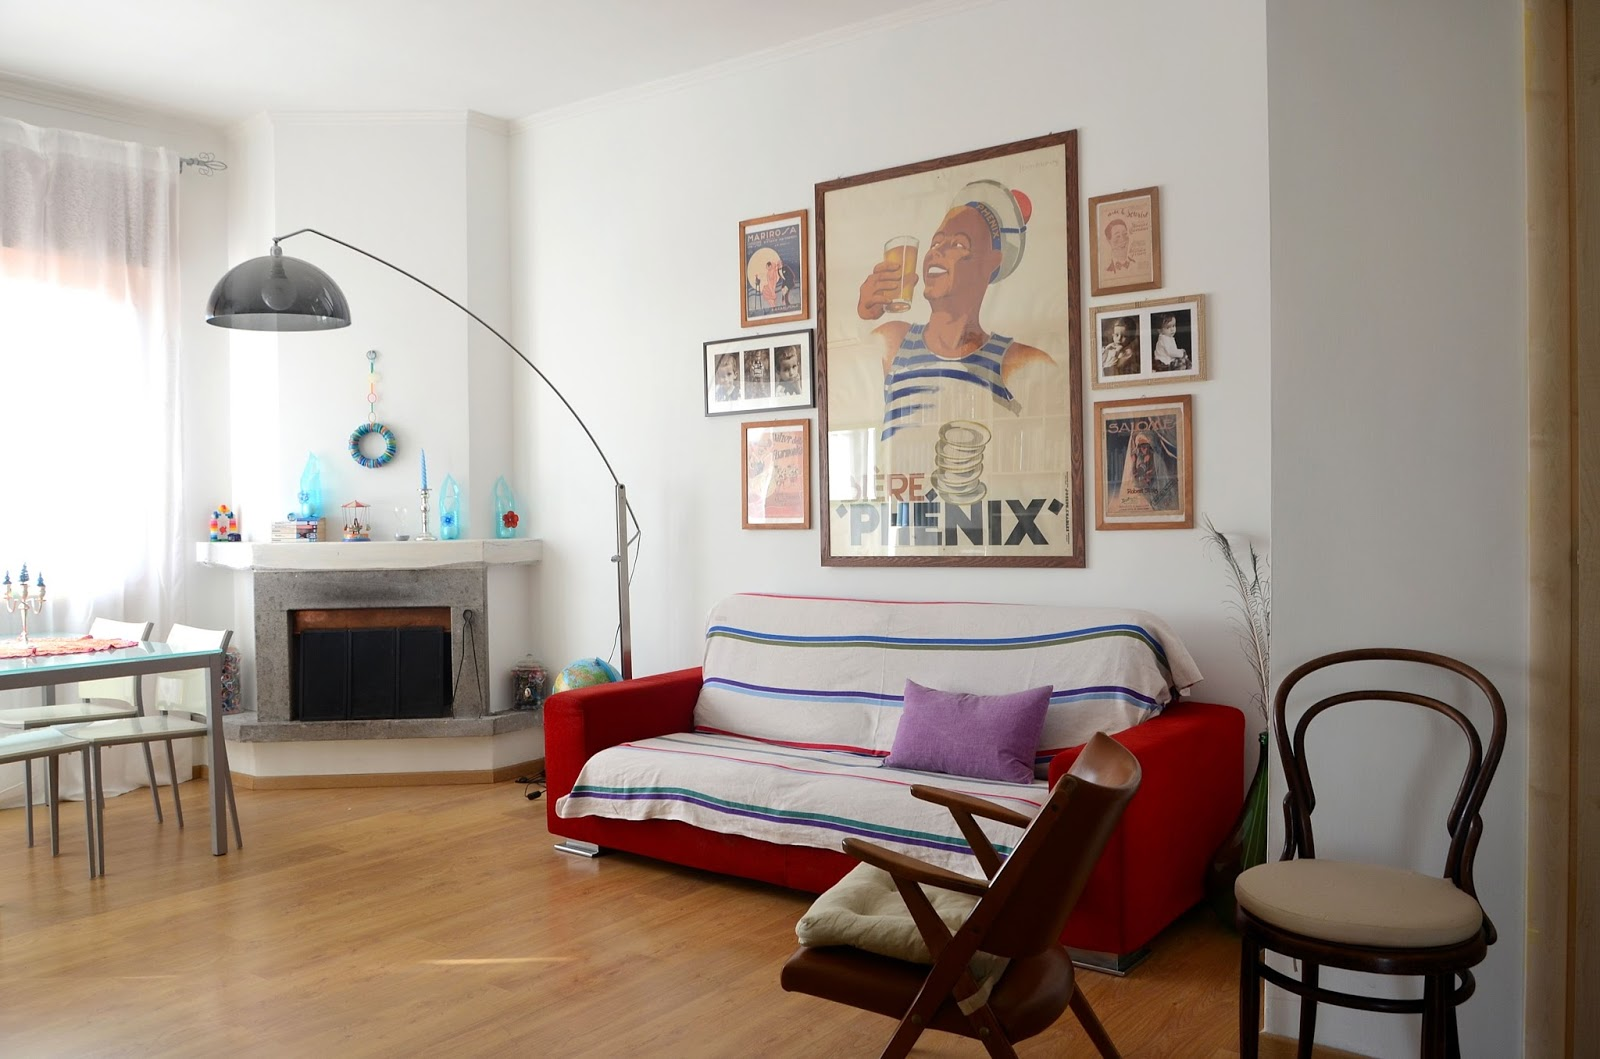 Linfa creativa my living room - Quadri sopra divano ...